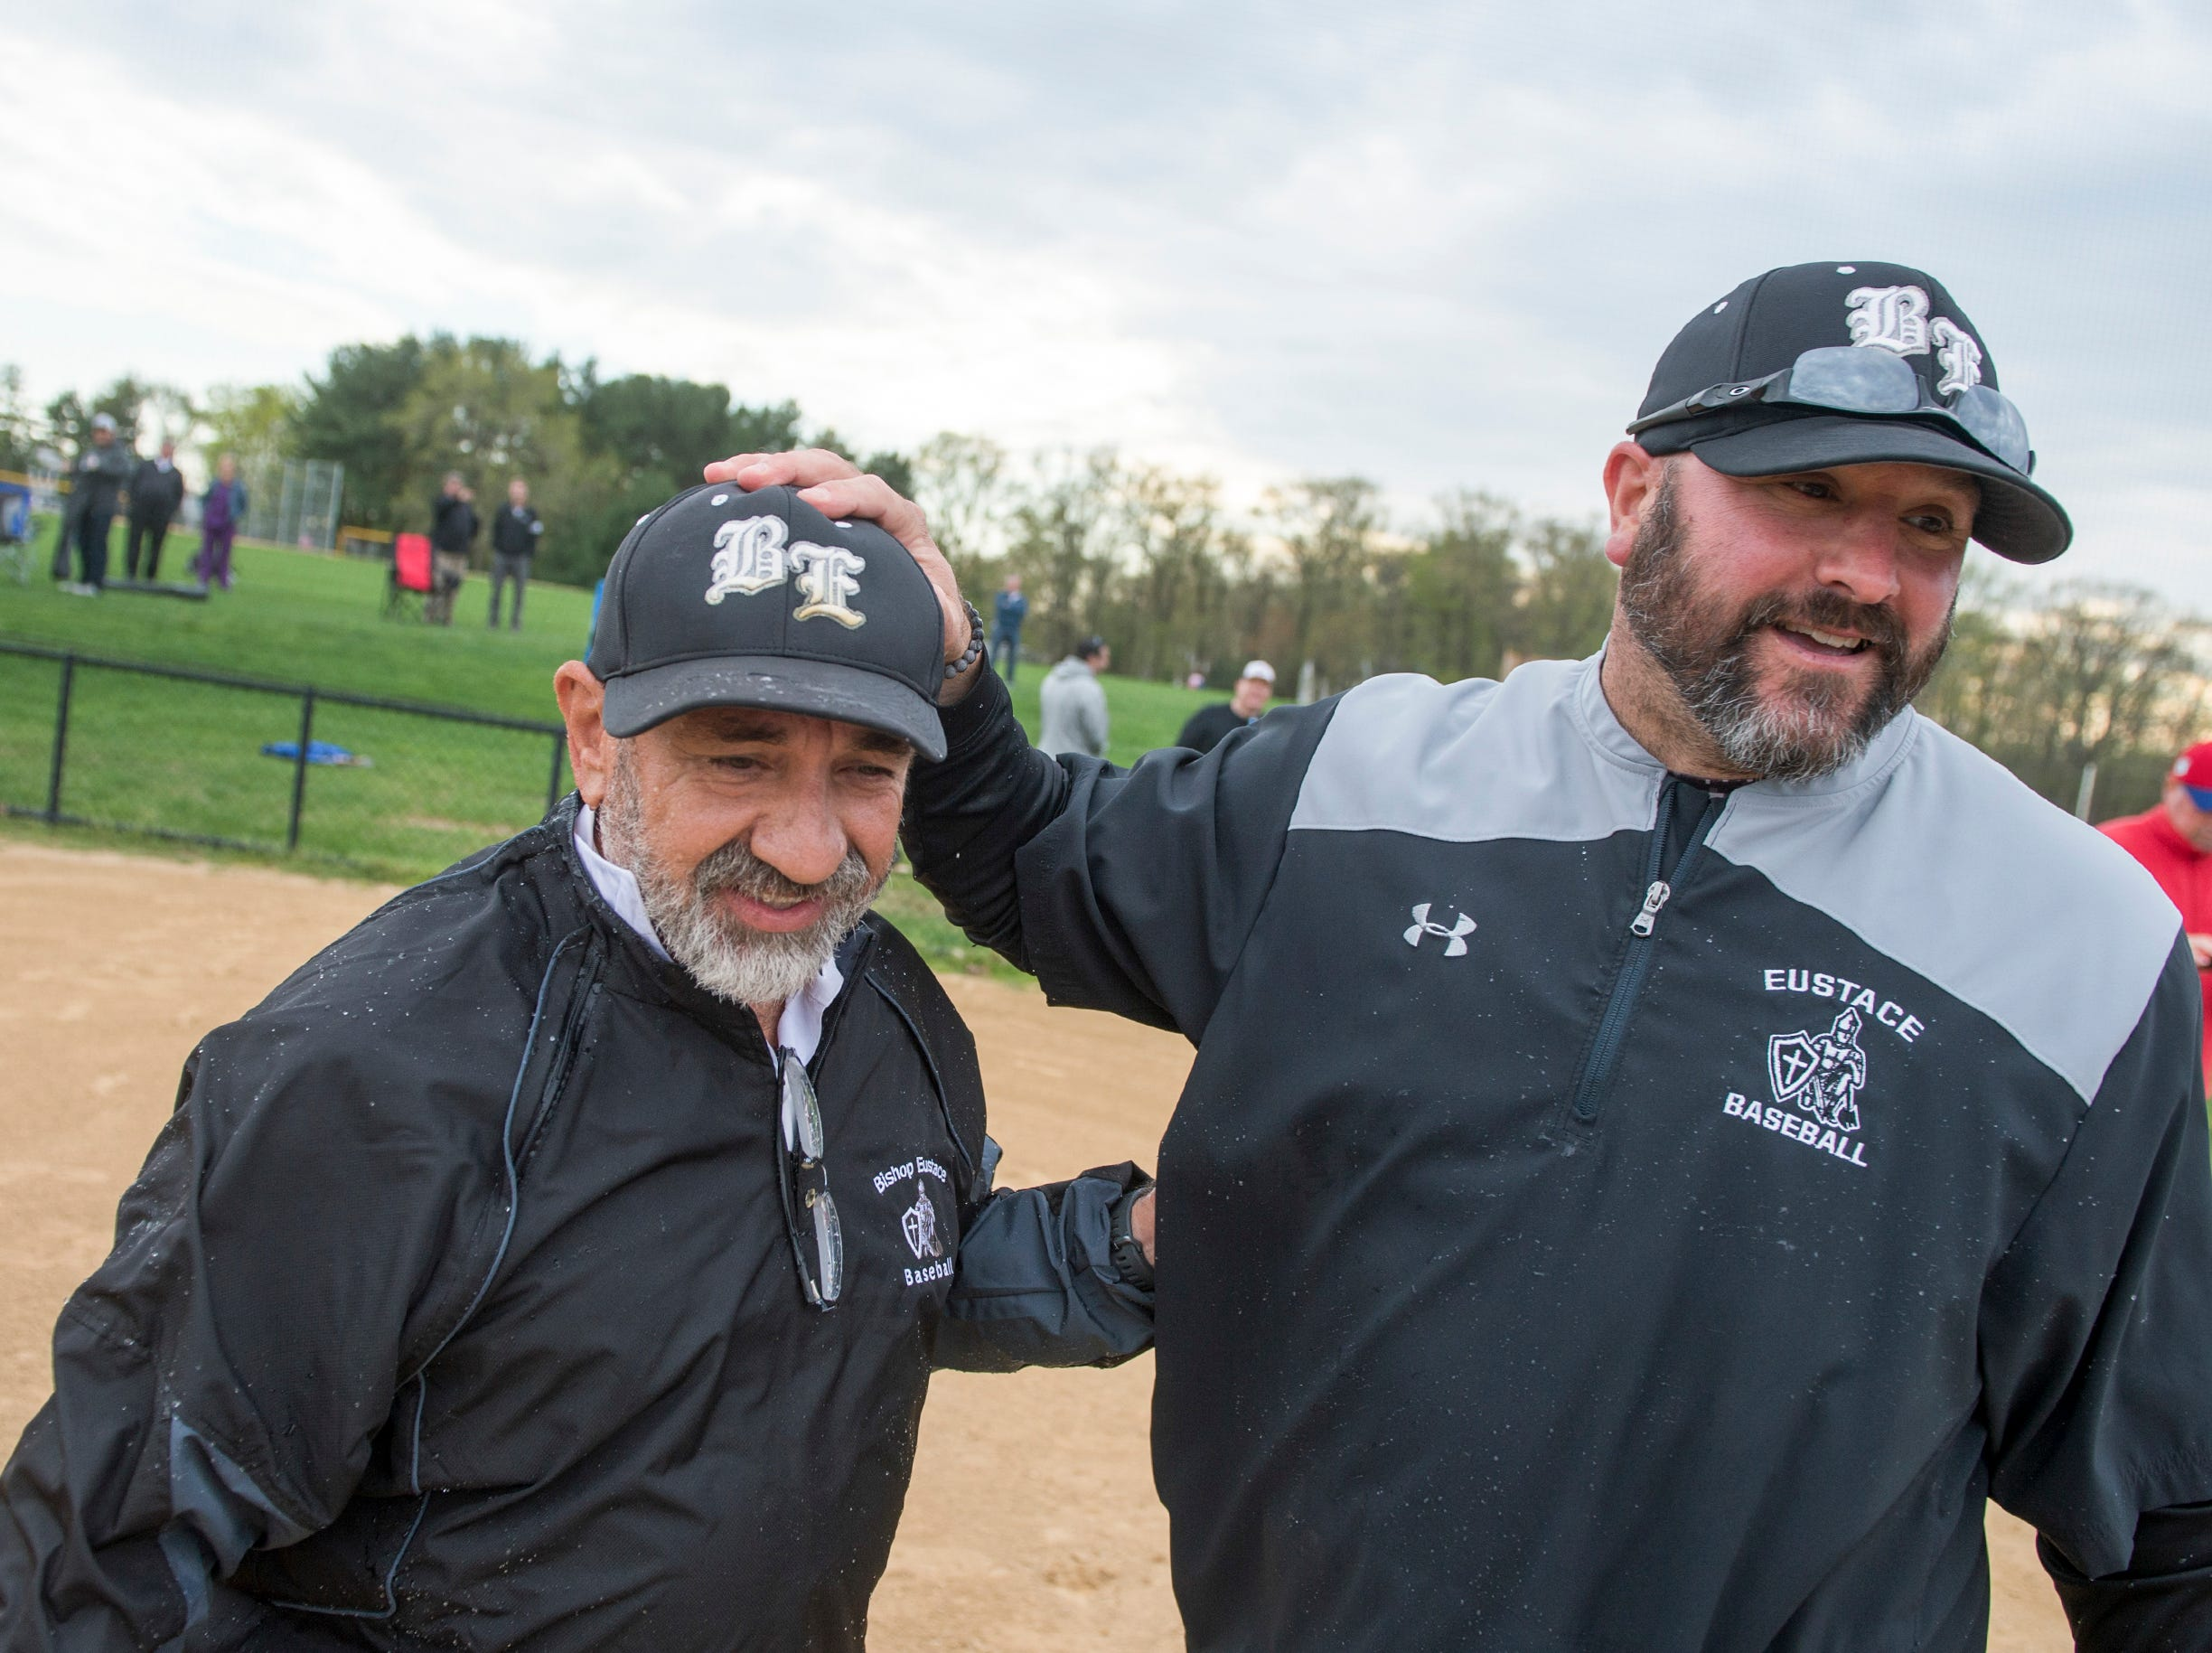 Bishop Eustace head coach Sam Tropiano, left, is congratulated by assistant coach Nick DelGozzo following a 5-3 win over Lenape, earning his 673rd win and a new South Jersey record Tuesday, April 16, 2019 at Lenape High School in Medford, N.J.